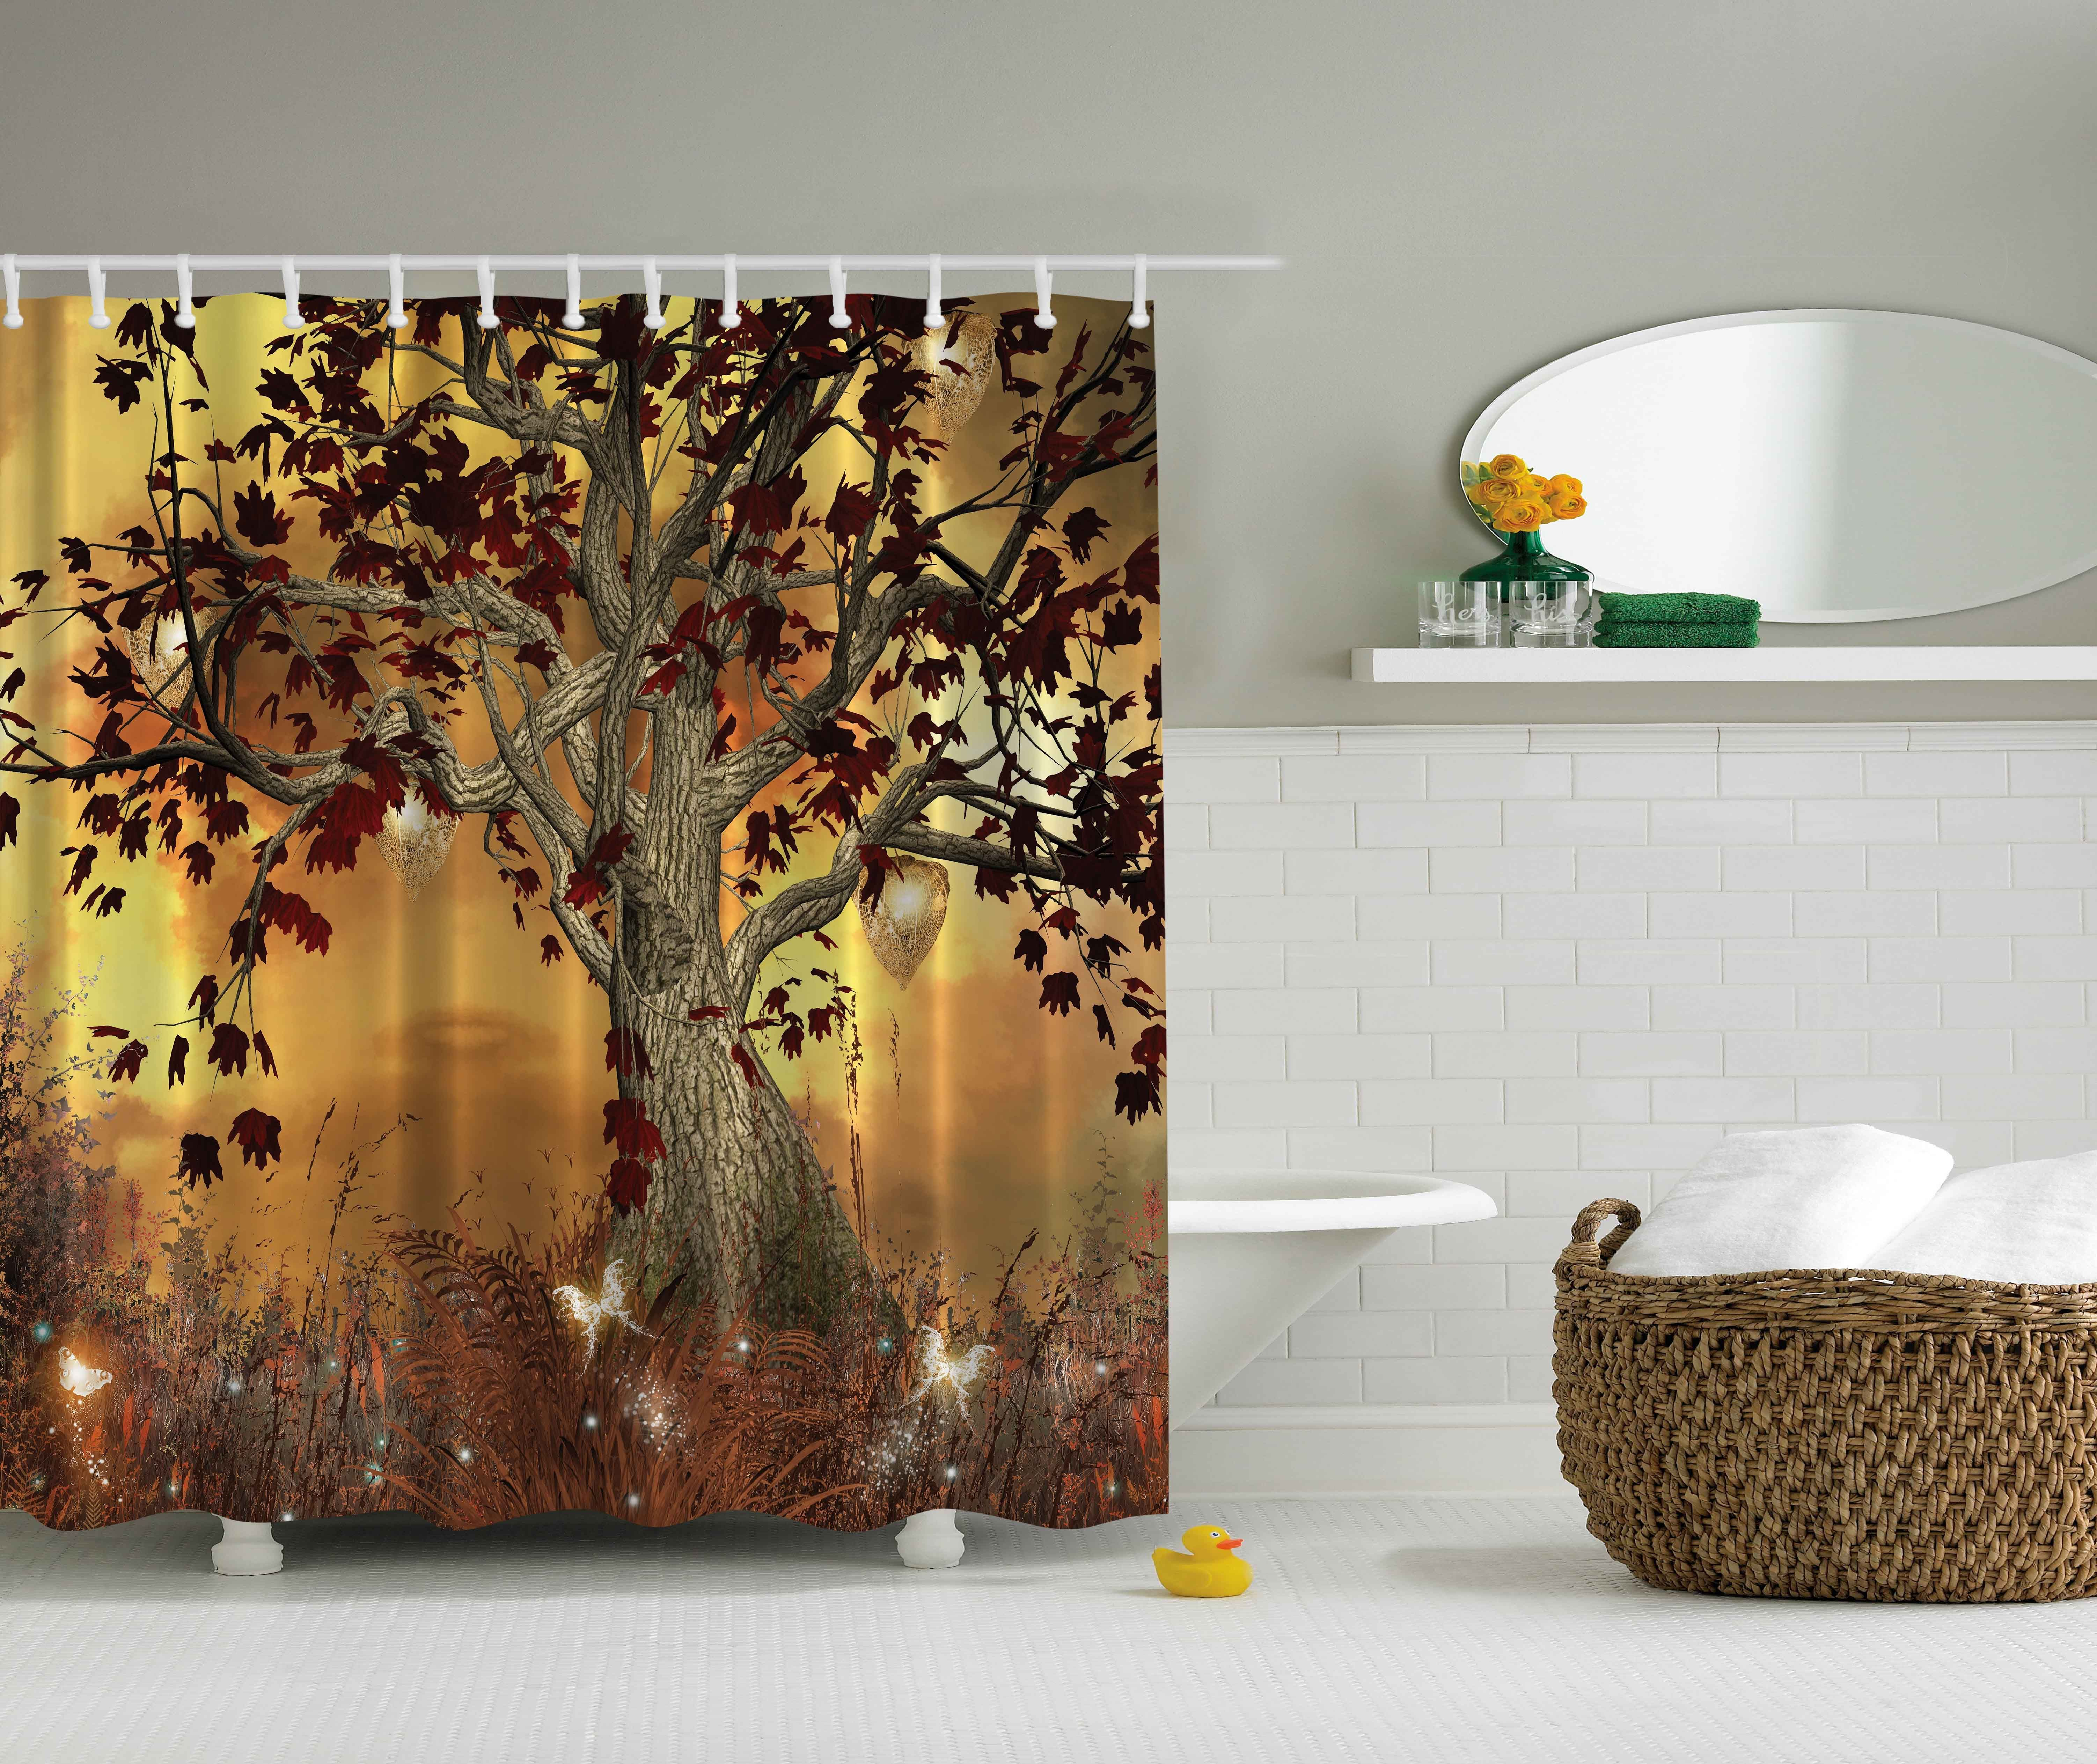 Old Twisted Tree   Shower Curtain   Water, Soap, And Mildew Resistant    Machine Washable   Shower Hooks Are Included. These One Of A Kind Shower  Curtains ...